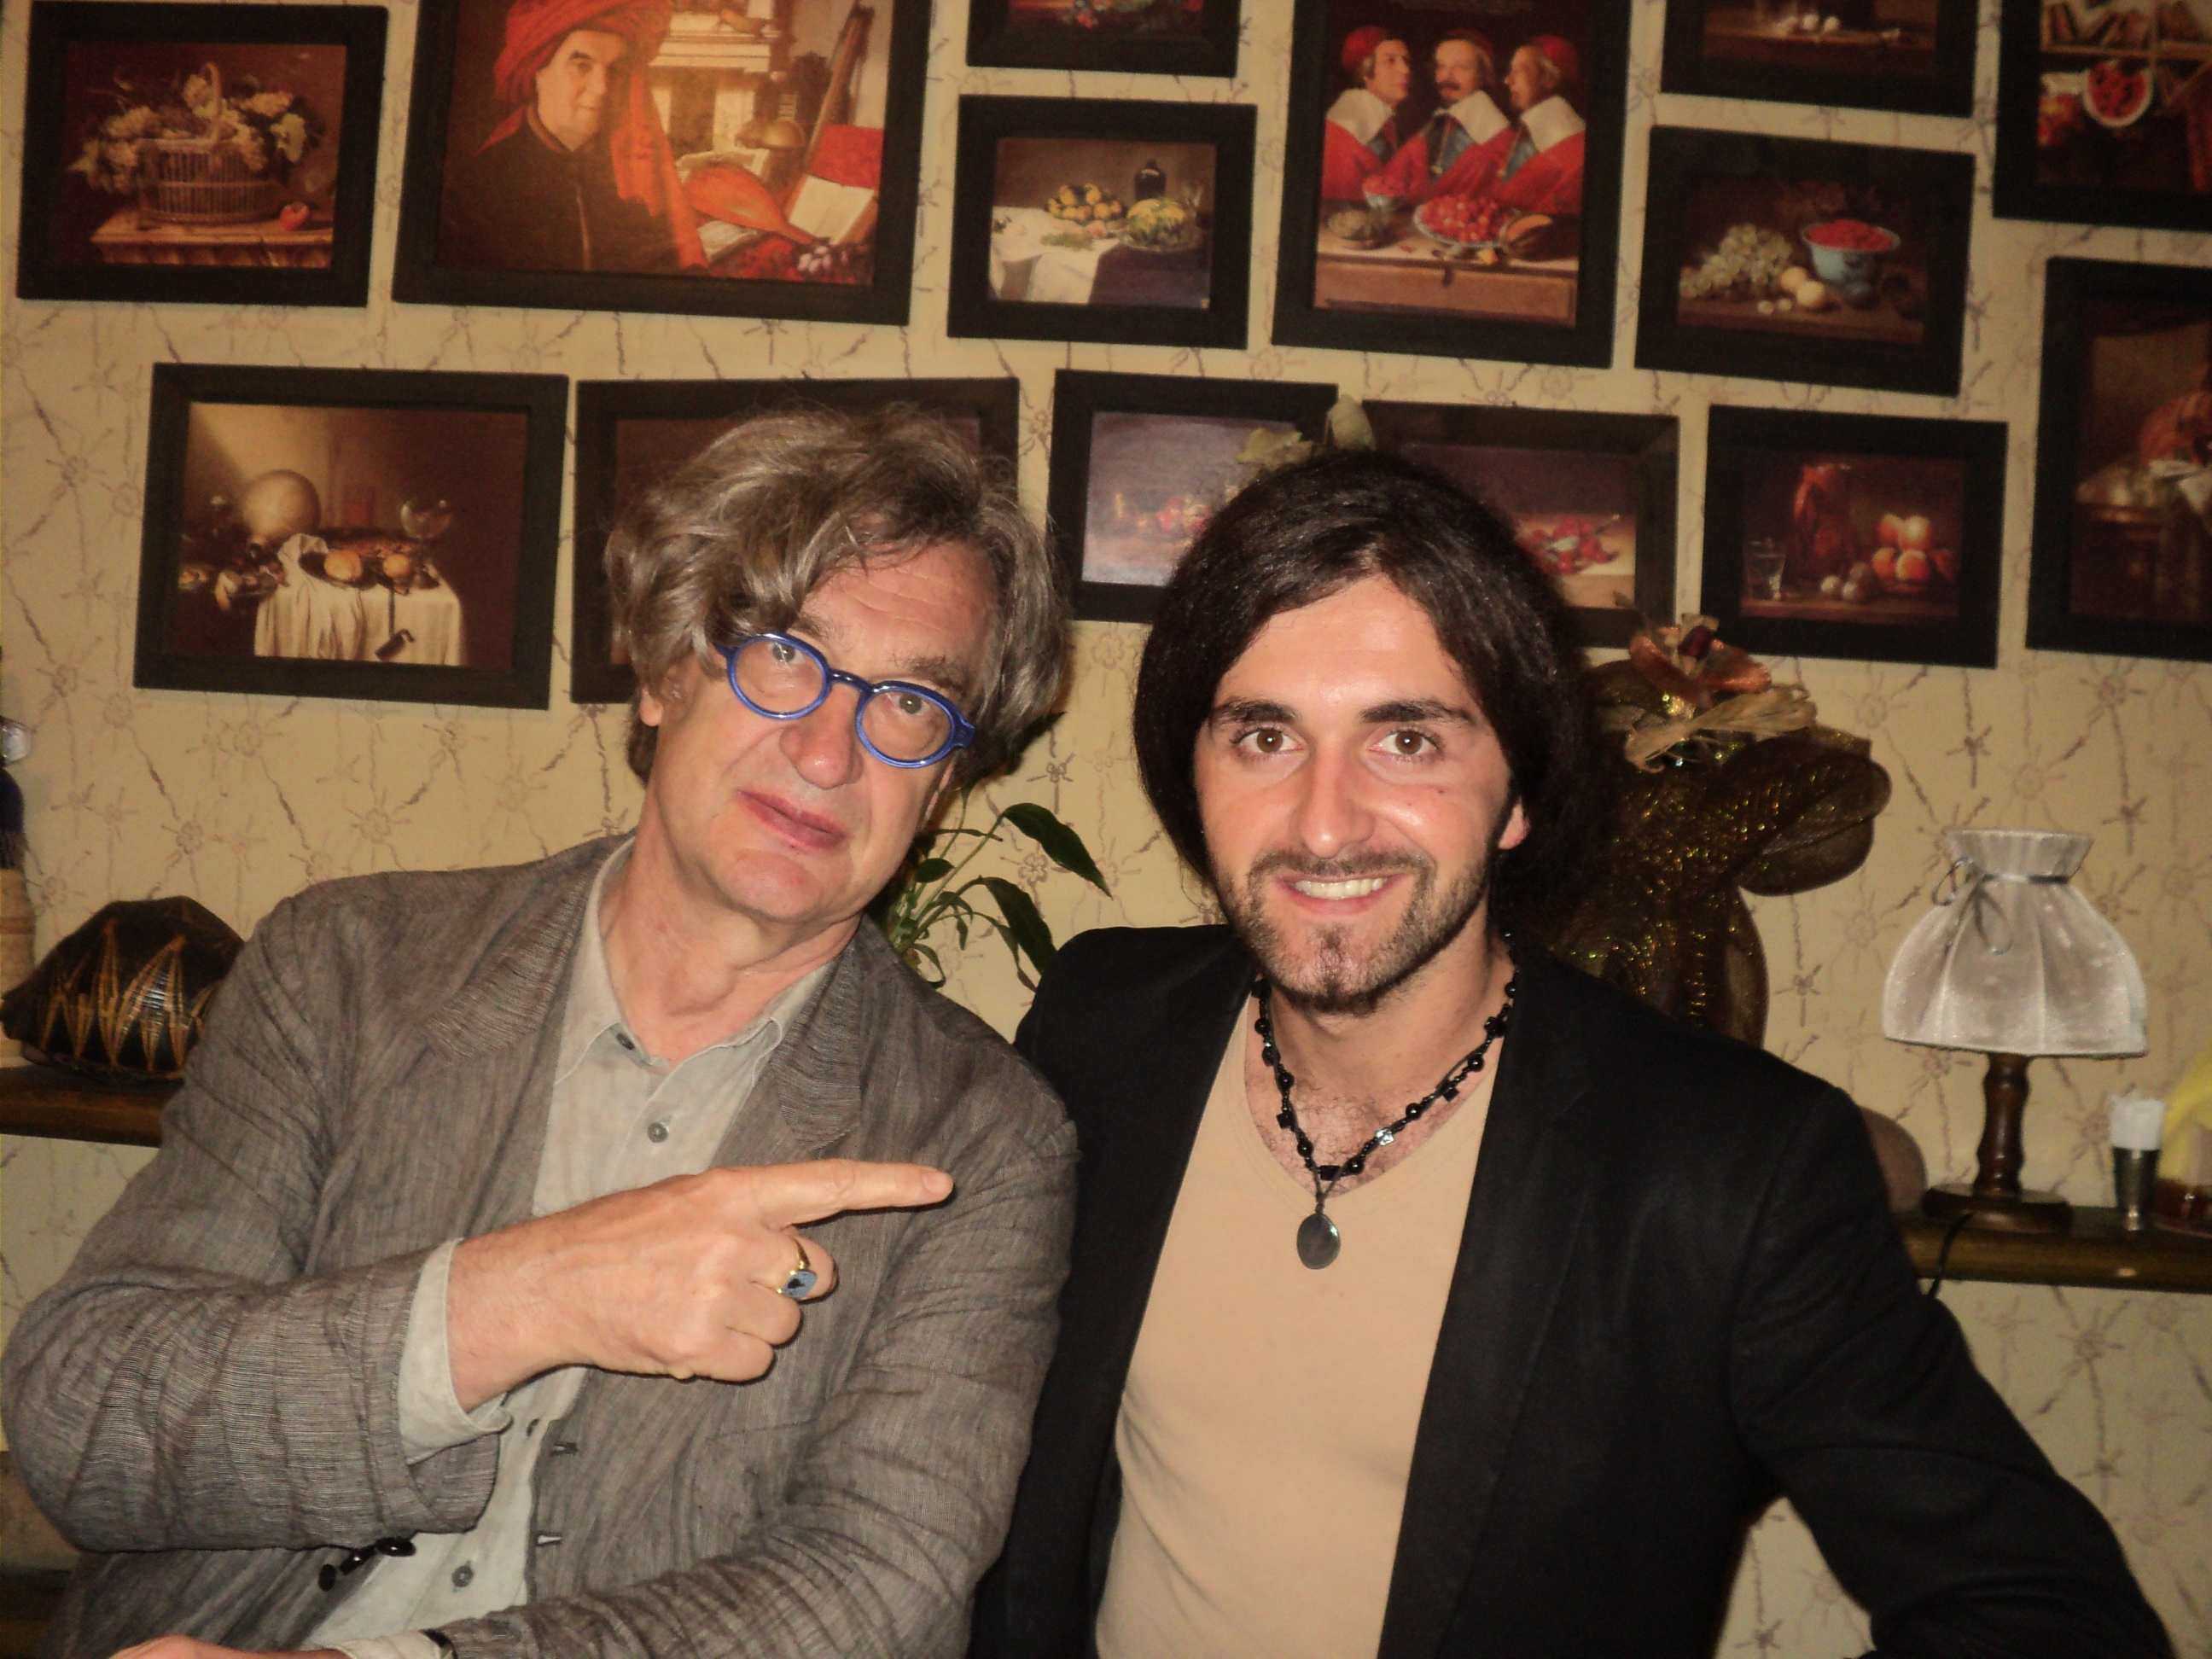 Ado Hasnaovic with Wim Wenders during the Sarajevo Film Festival in 2012